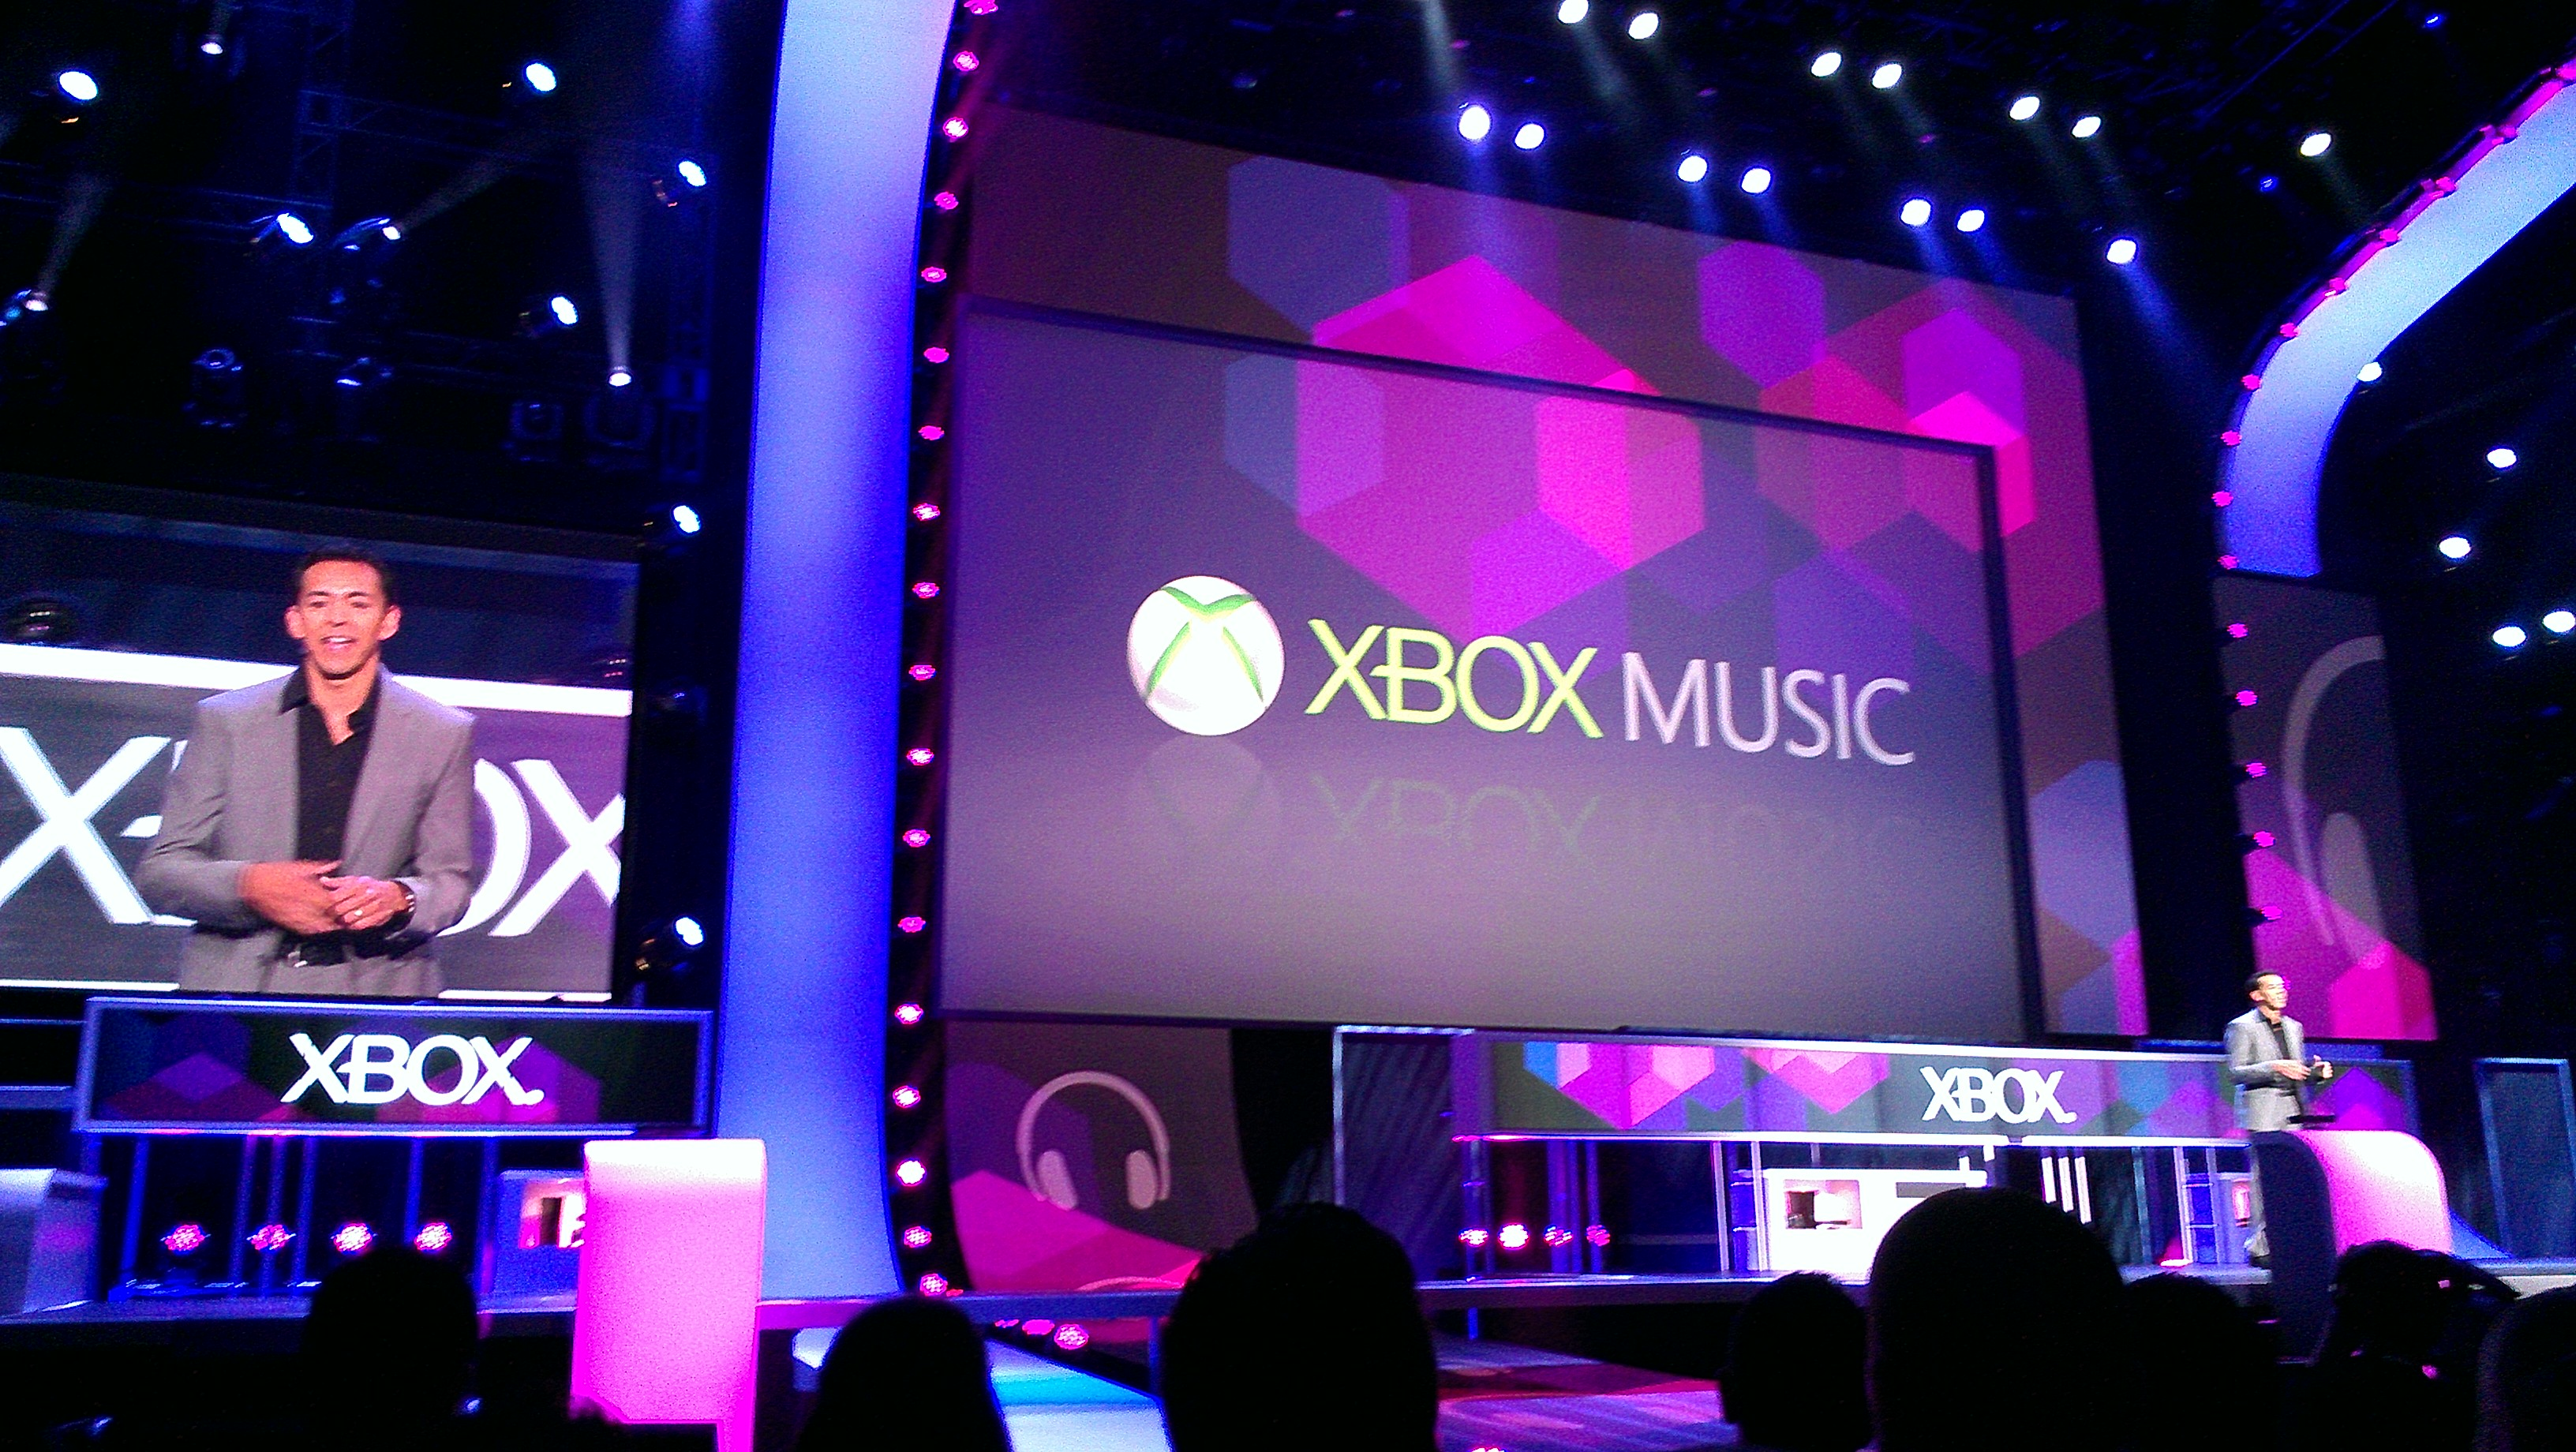 Xbox Music Ushers Out the Zune Branding for Good at E3